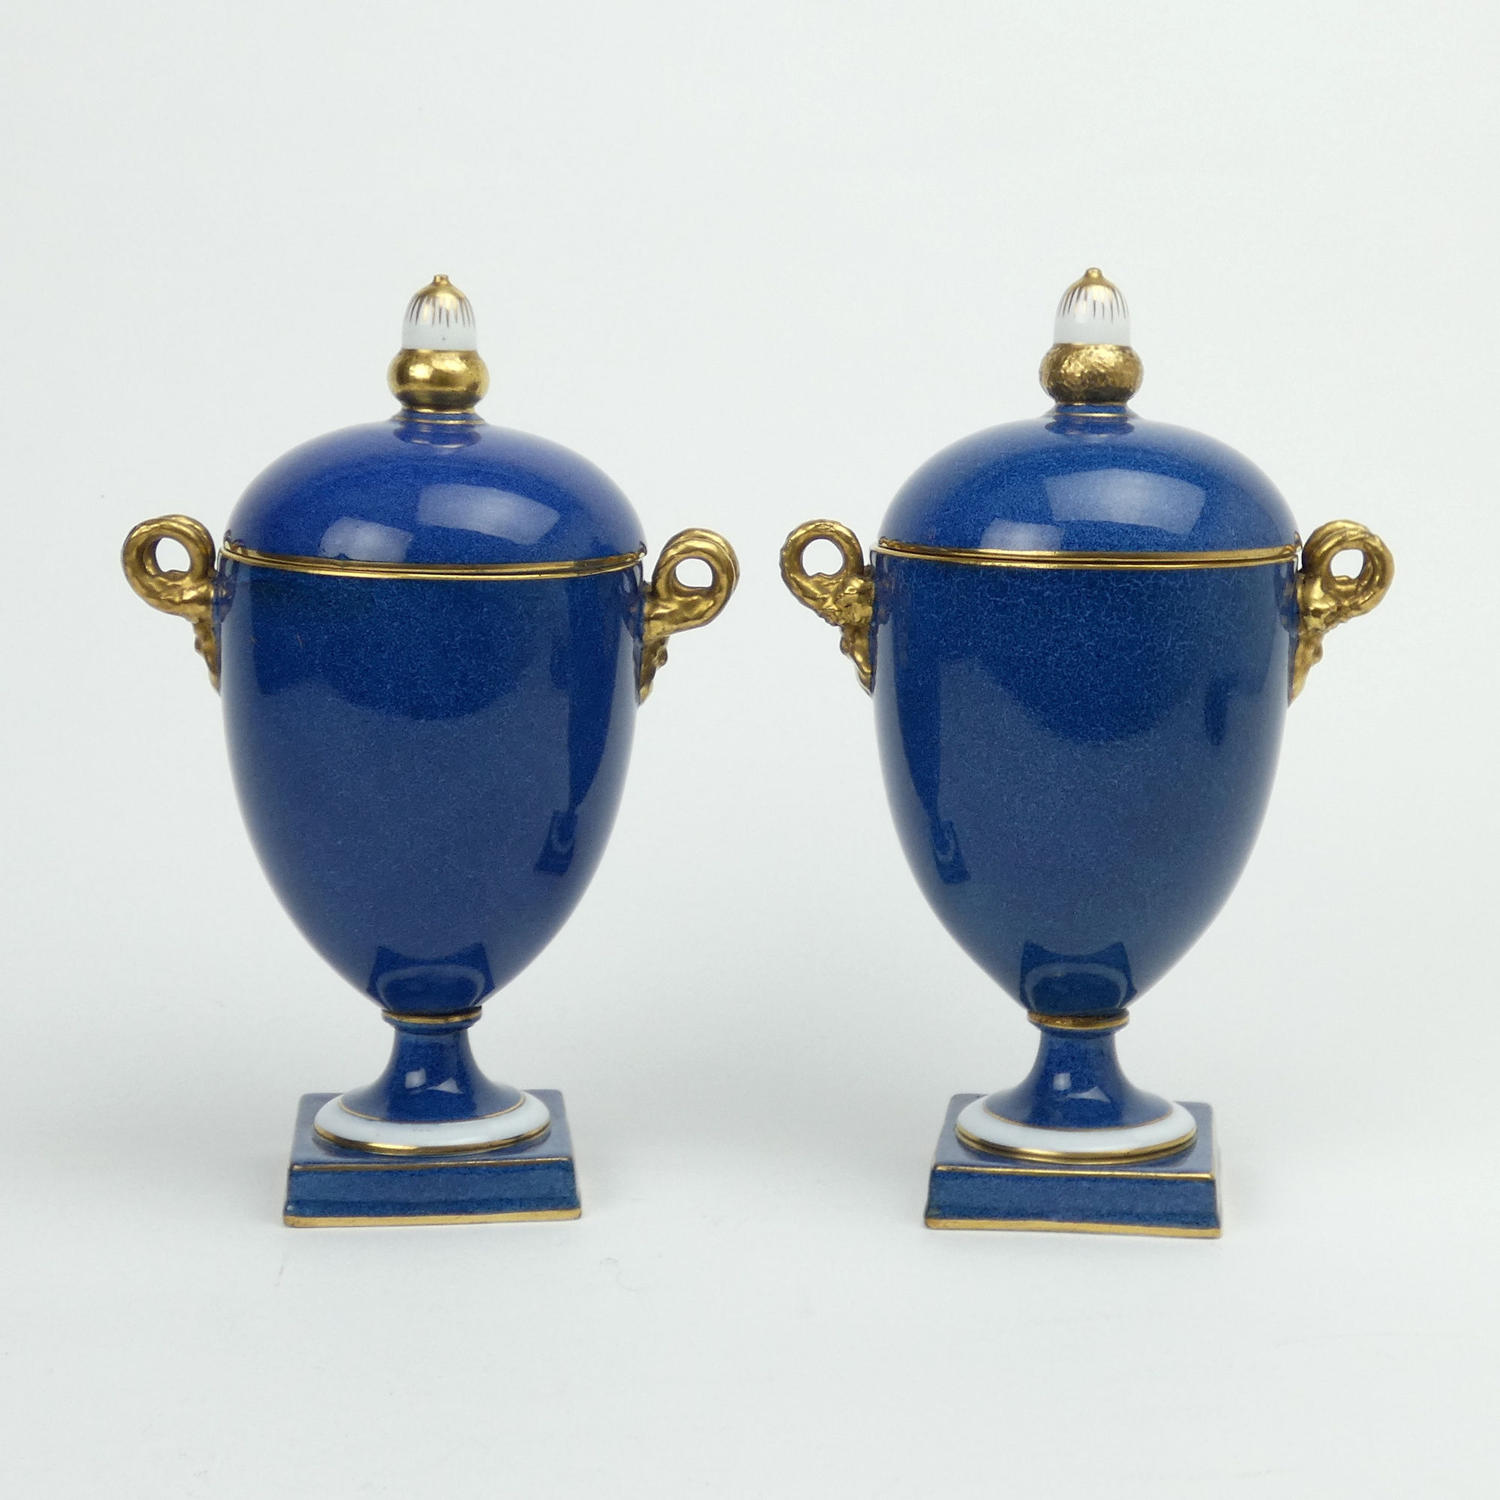 Wedgwood Bone China Vases